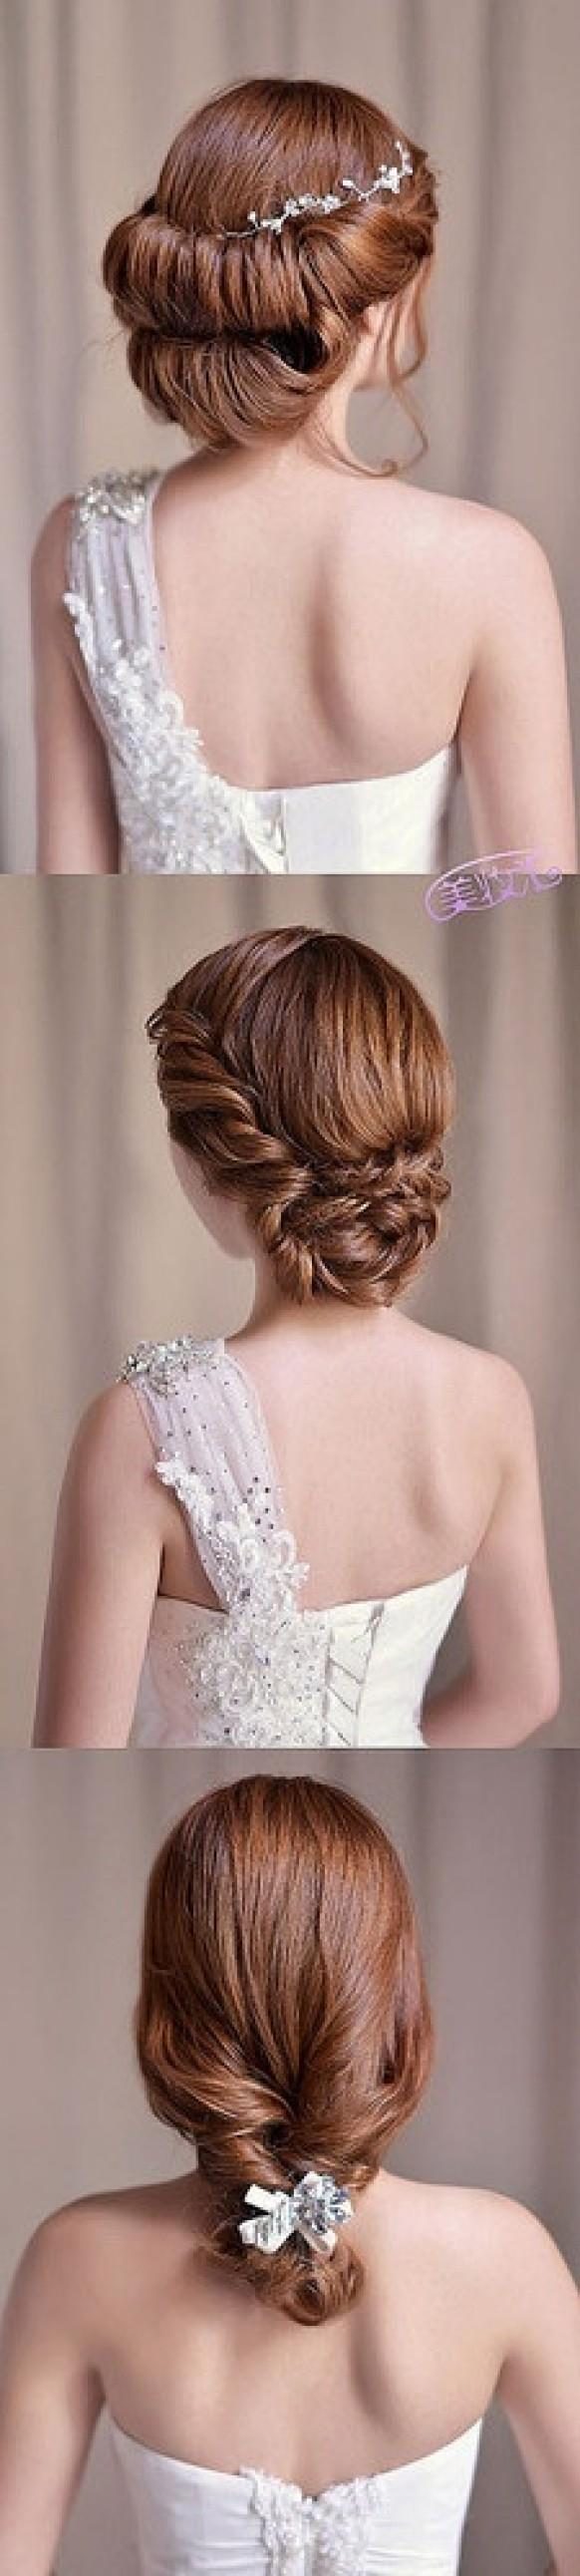 Wedding Hair Using Nets | medieval hairstyle source info